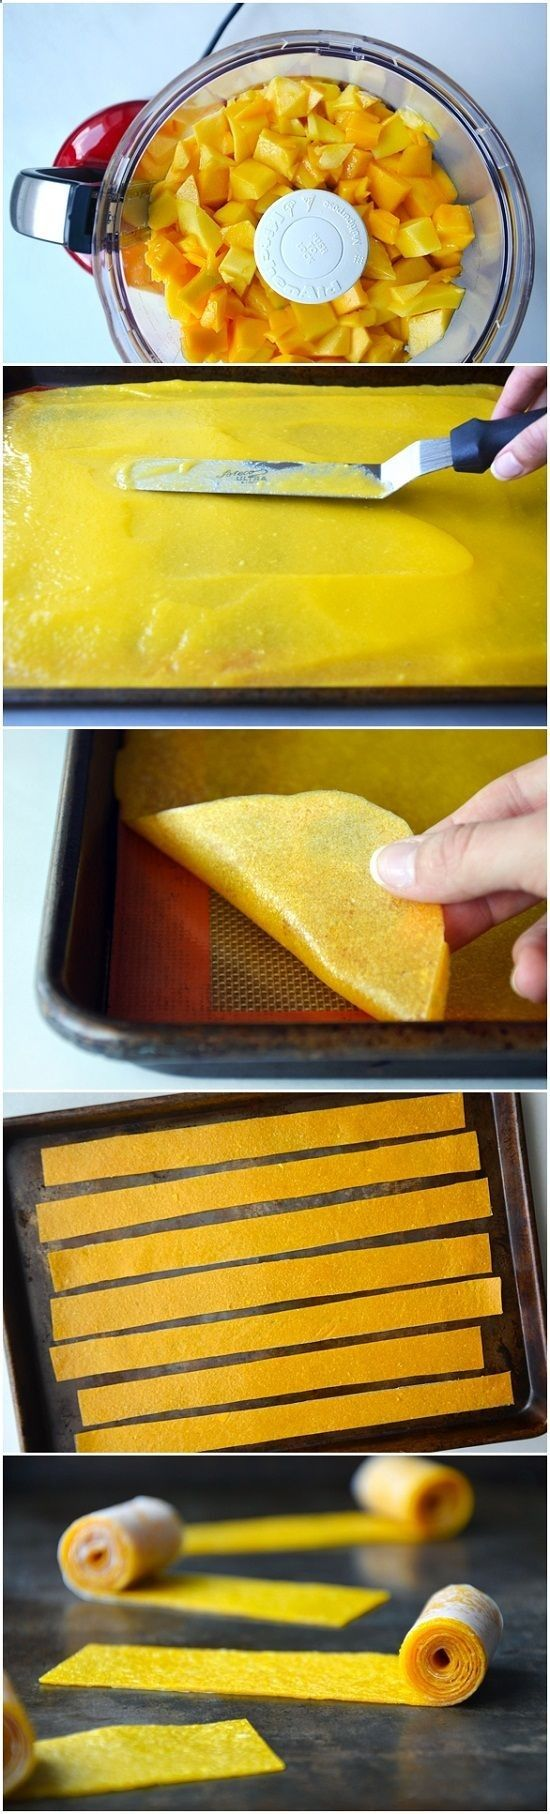 No.  Way.   Homemade mango fruit rollups - the only ingredient is mango.  Puree, spread, bake 3-4 hours at 175 and done.